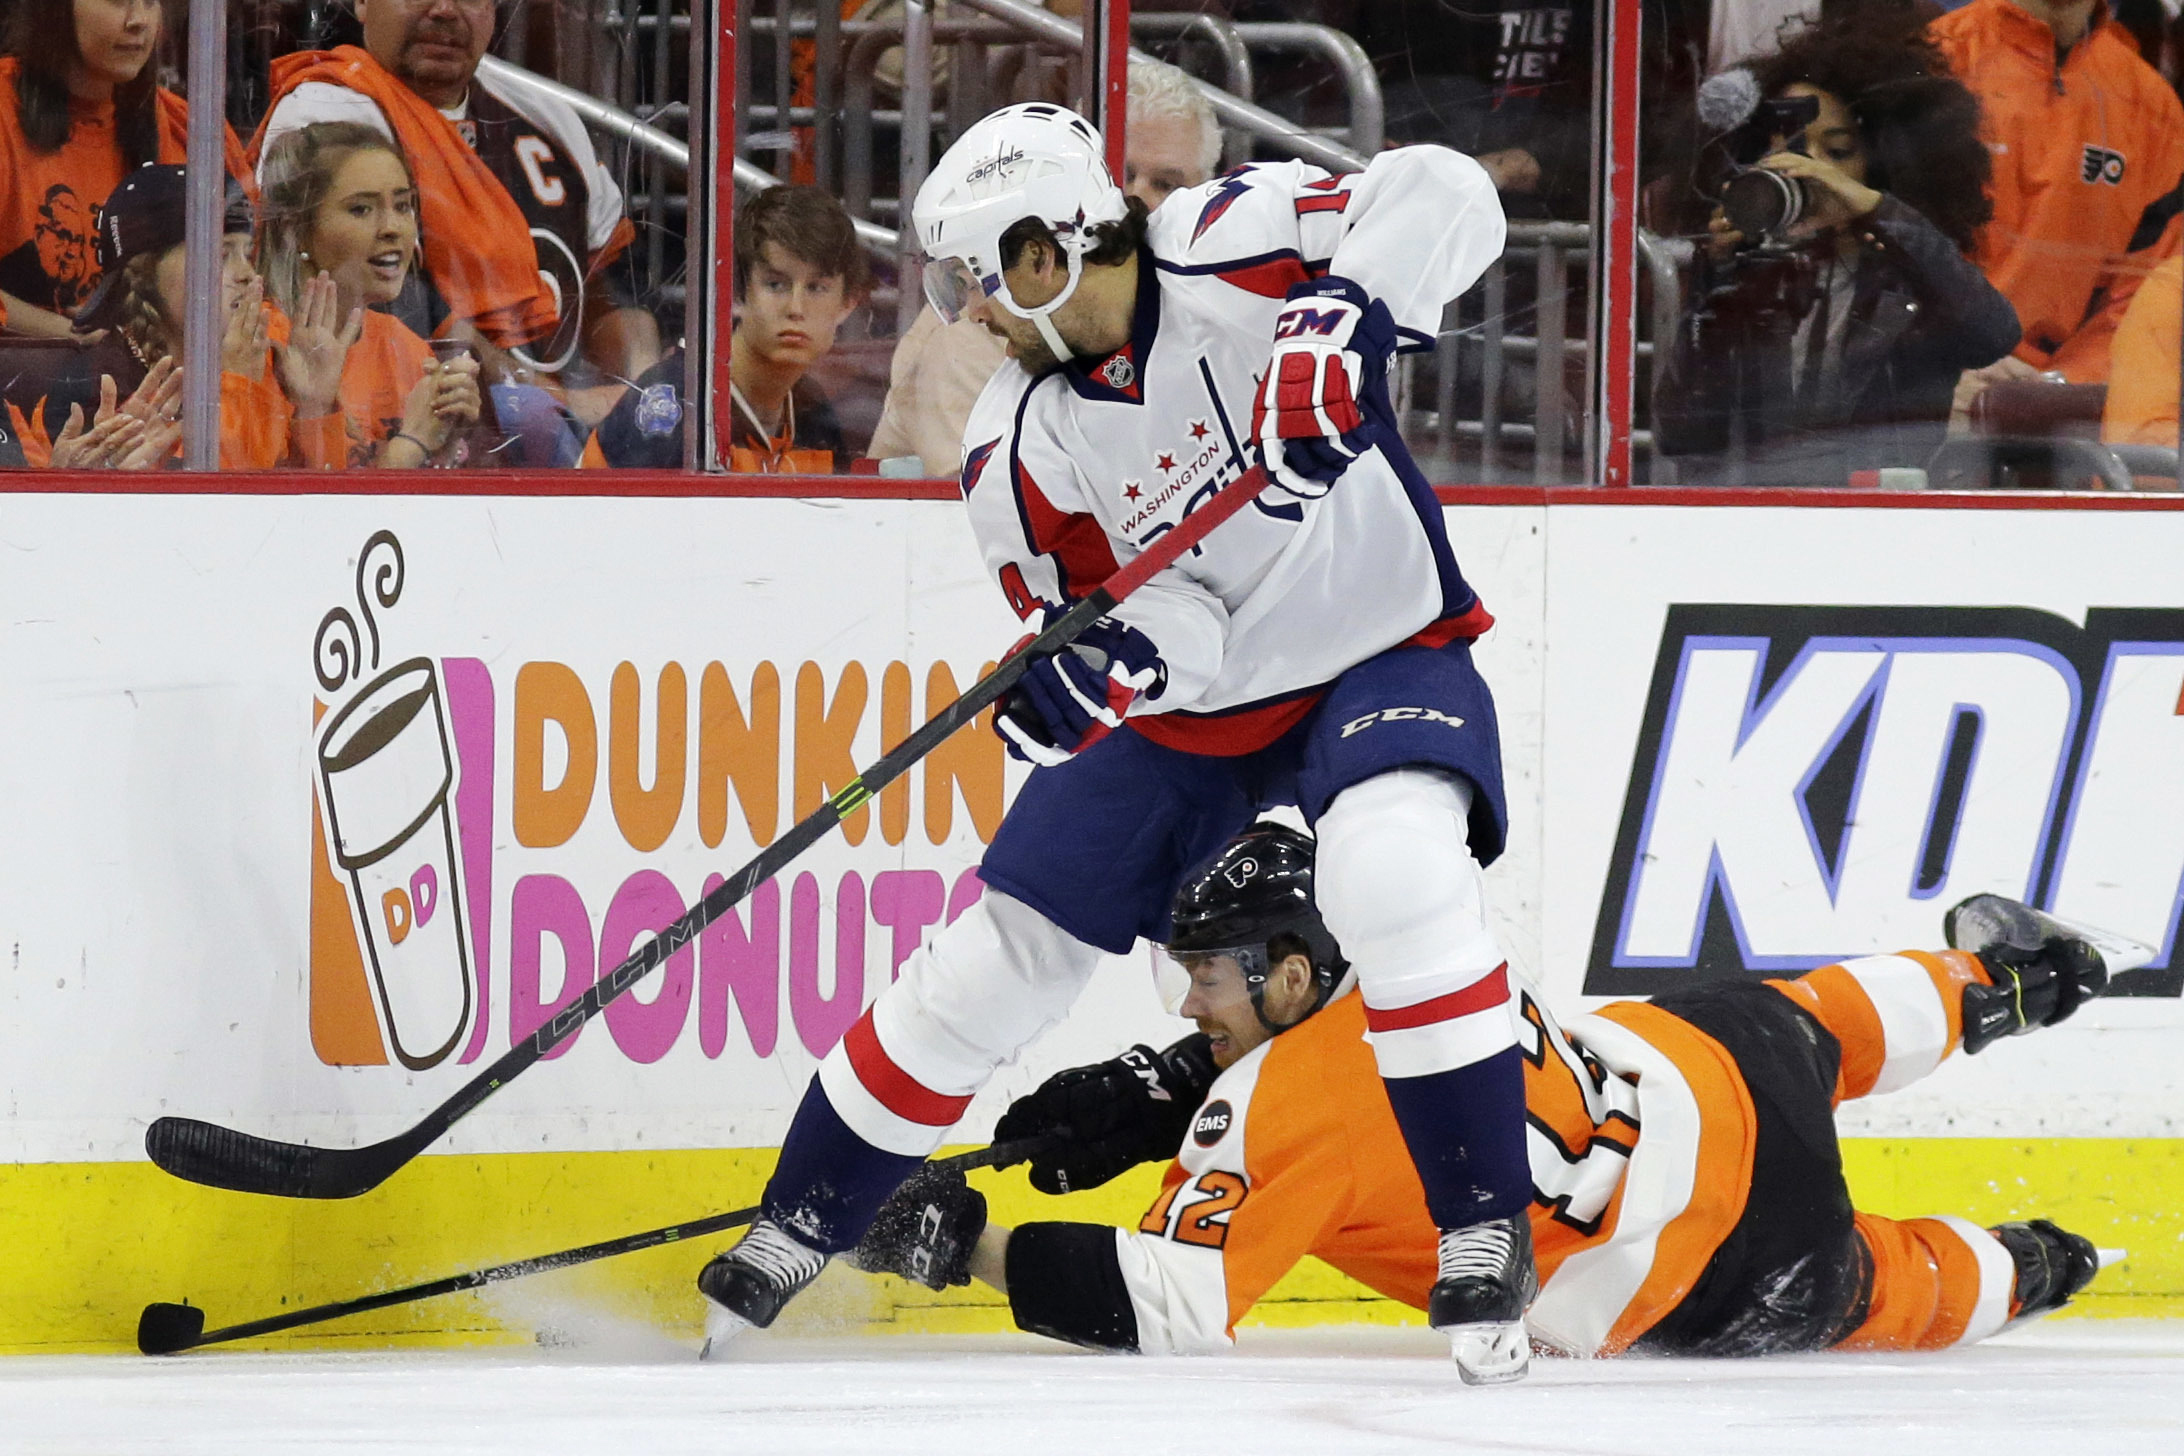 Capitals beat Flyers, advance to Round 2